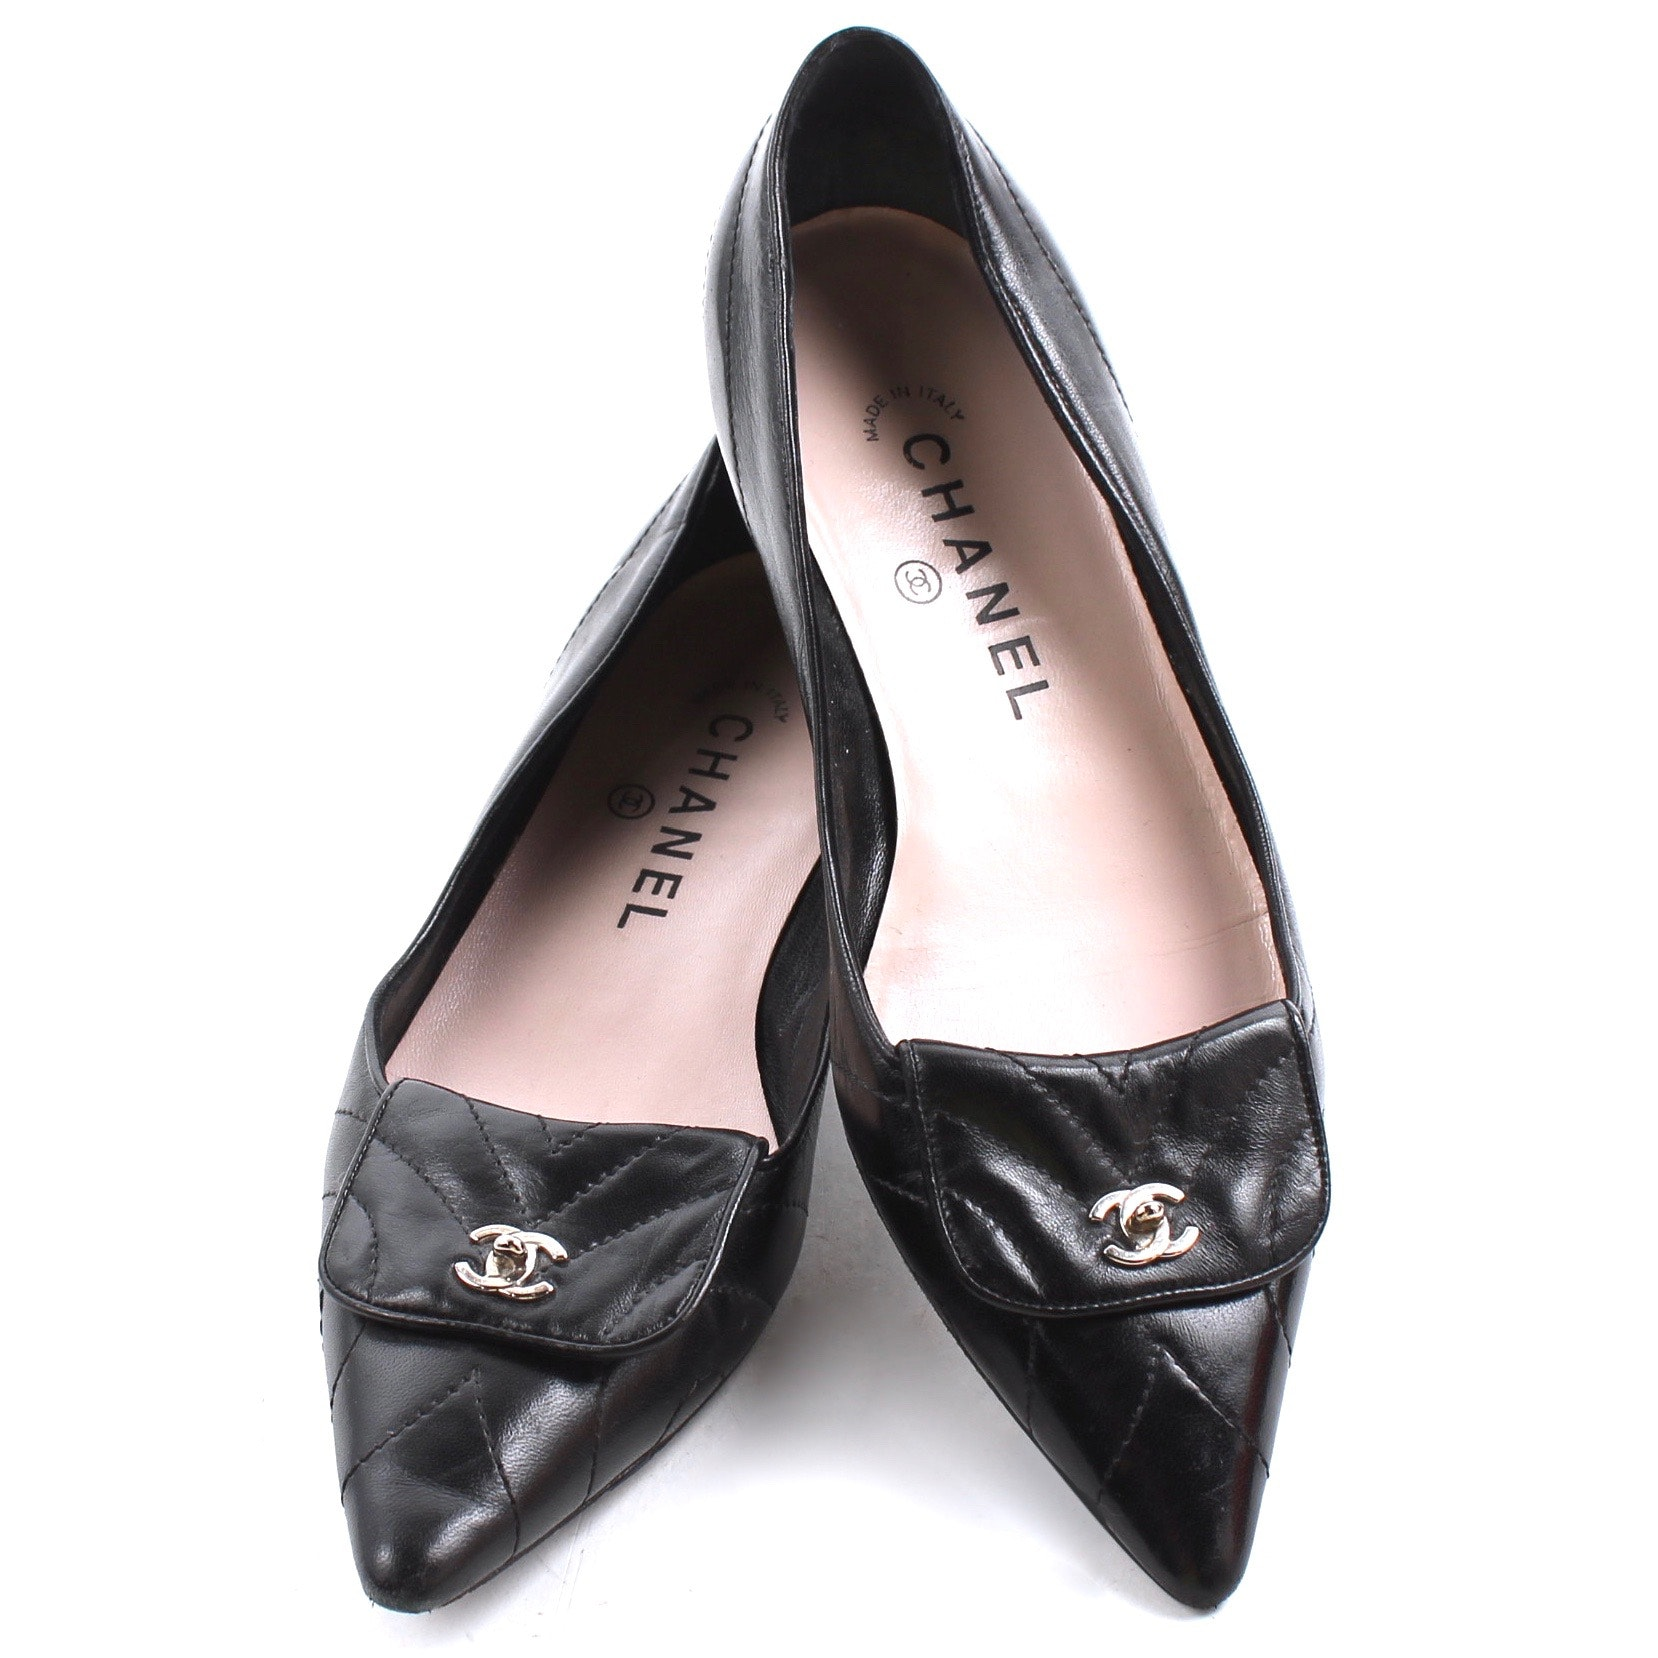 Chanel Black Leather Quilted Point Toe Ballet Flats